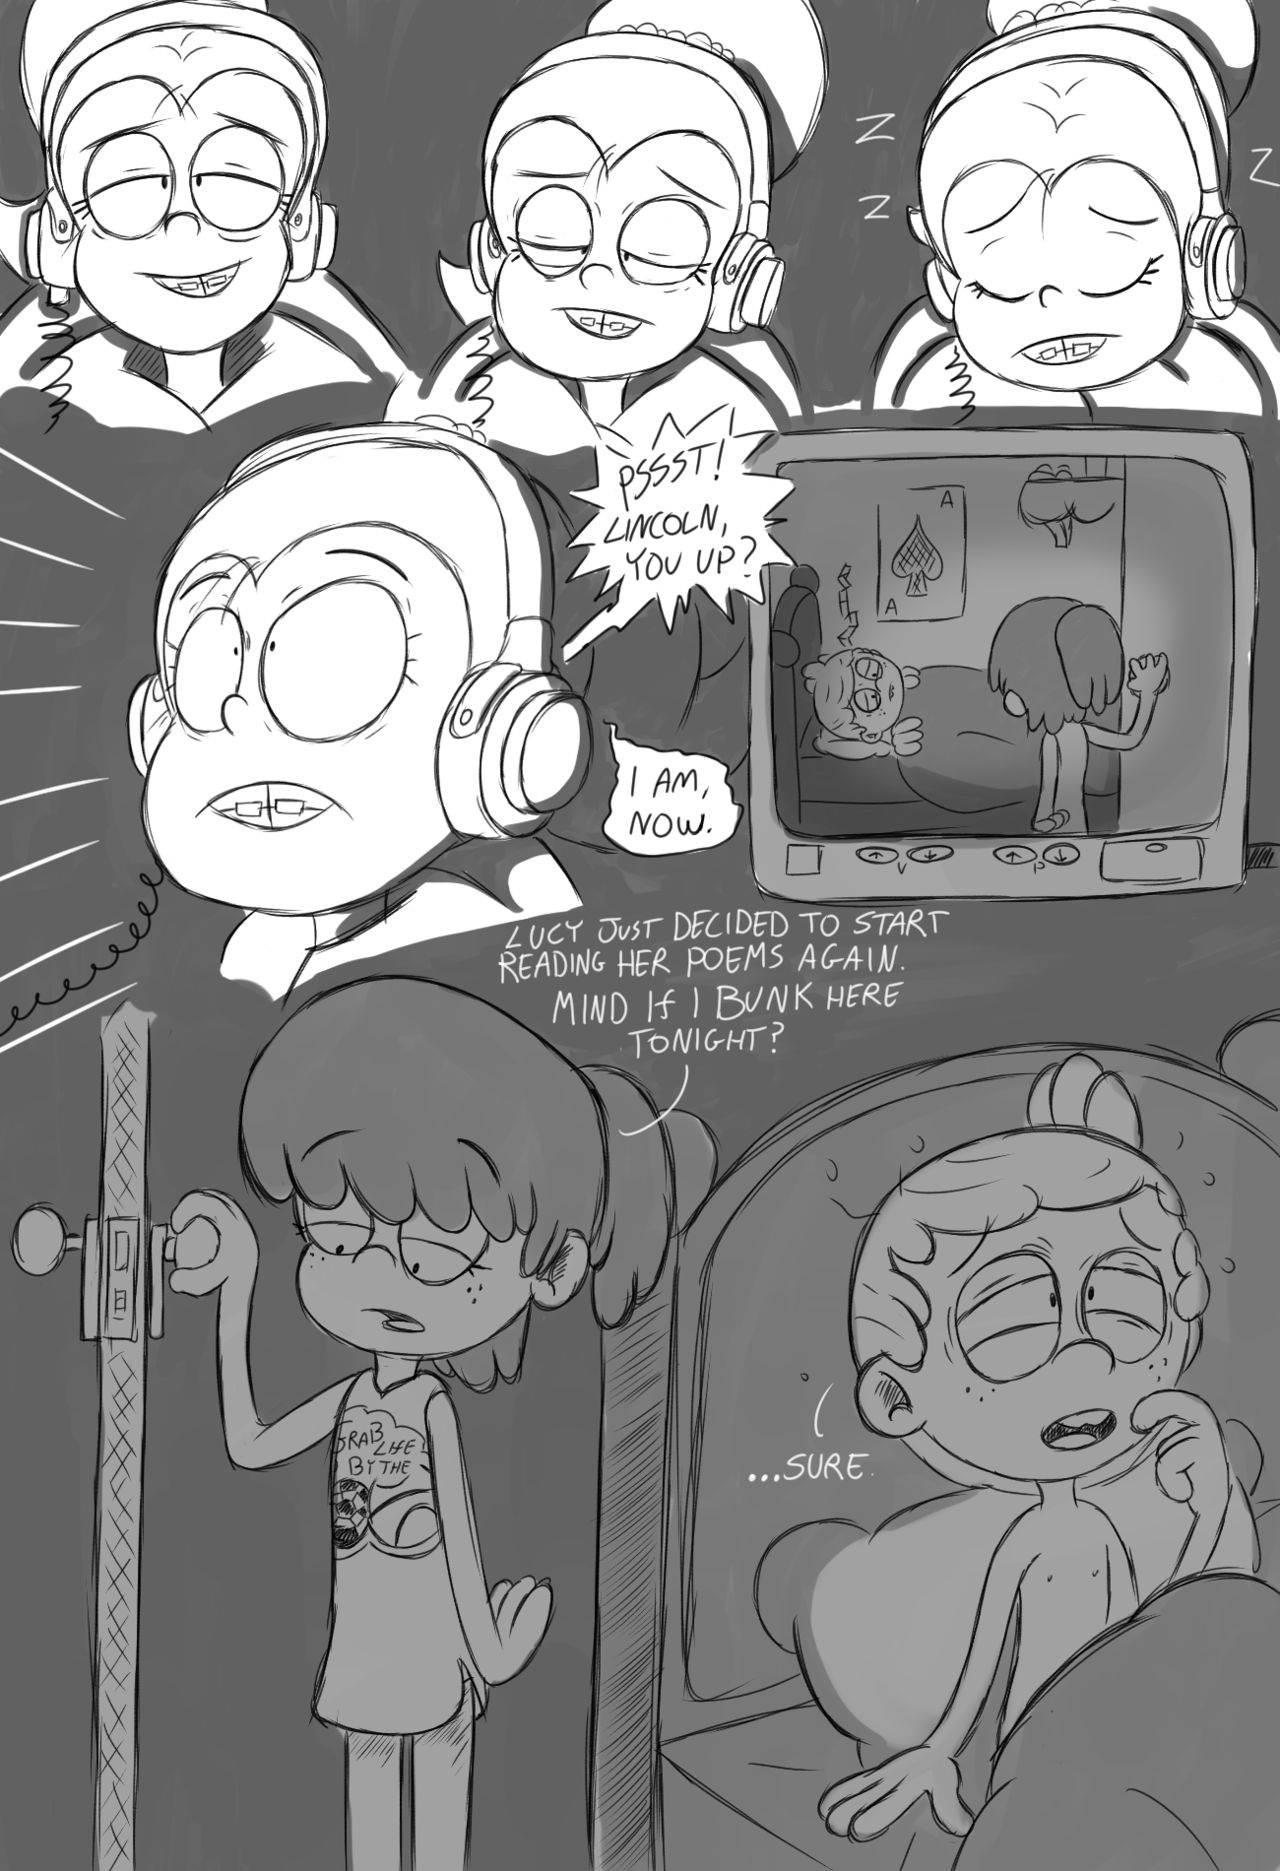 The loud house comic, chapter 2 cartoon porn Oral sex, incest, Lolicon, Masturbation